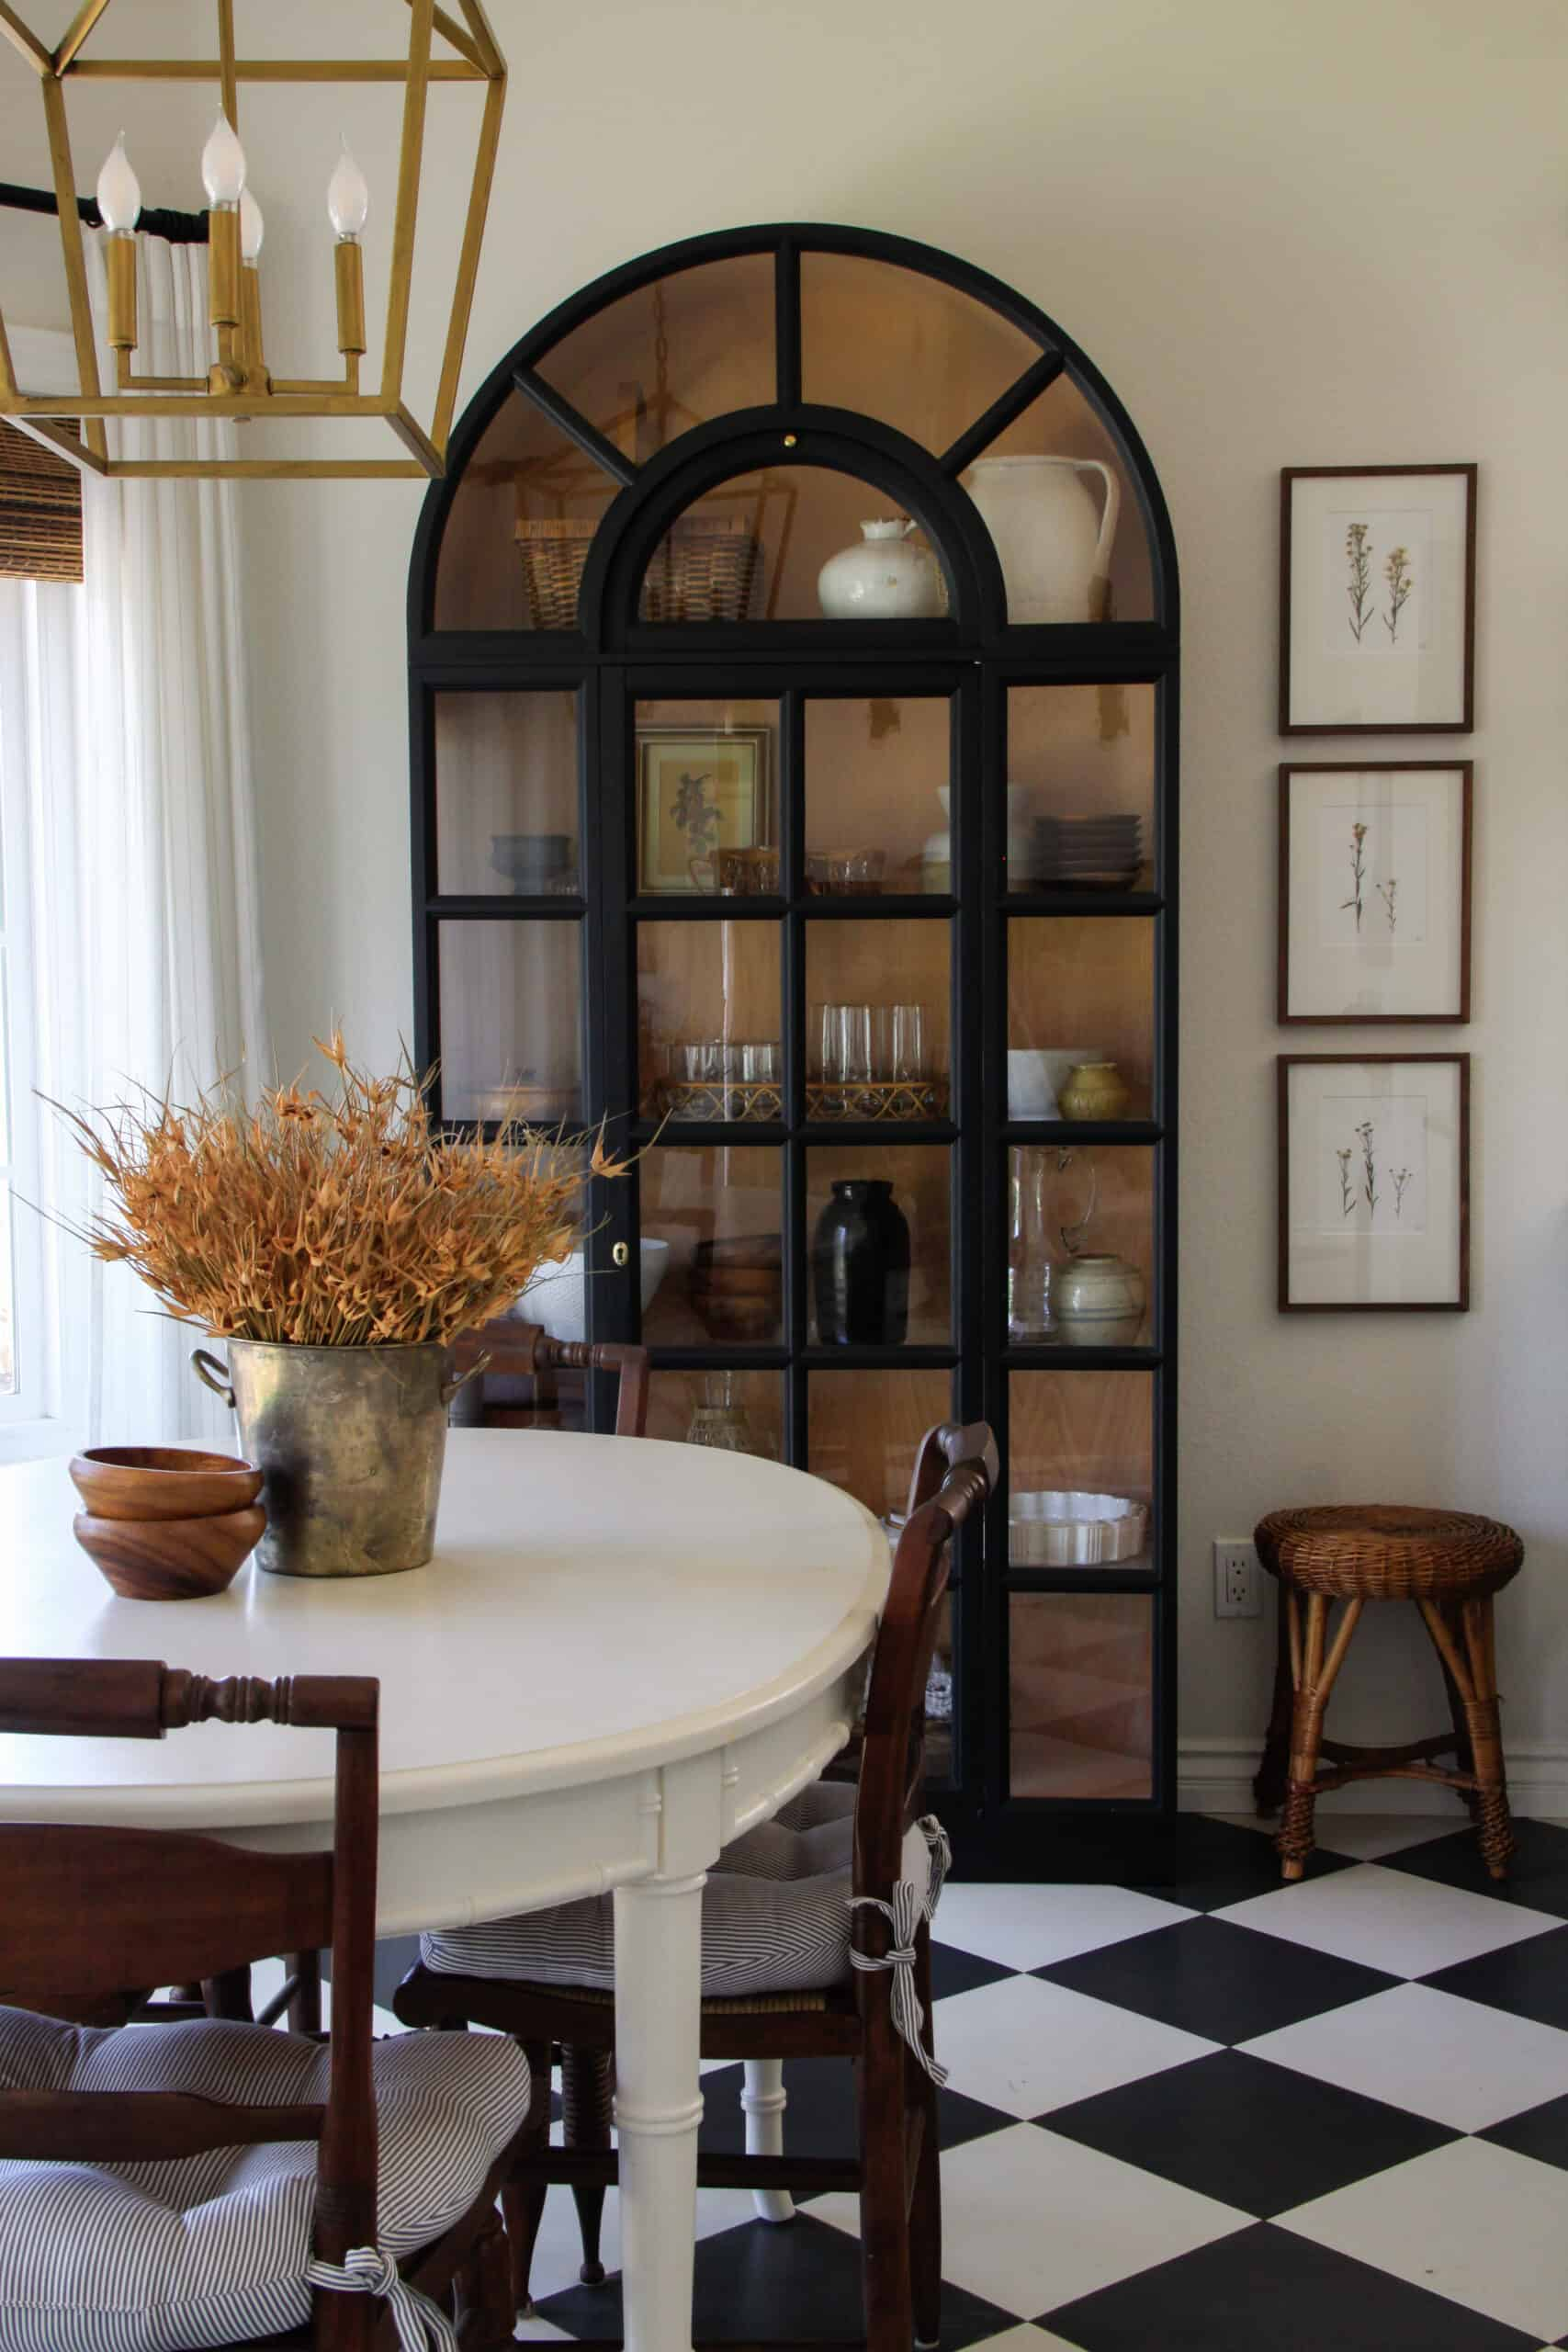 black arched display cabinet in breakfast nook with white table and checkered floors